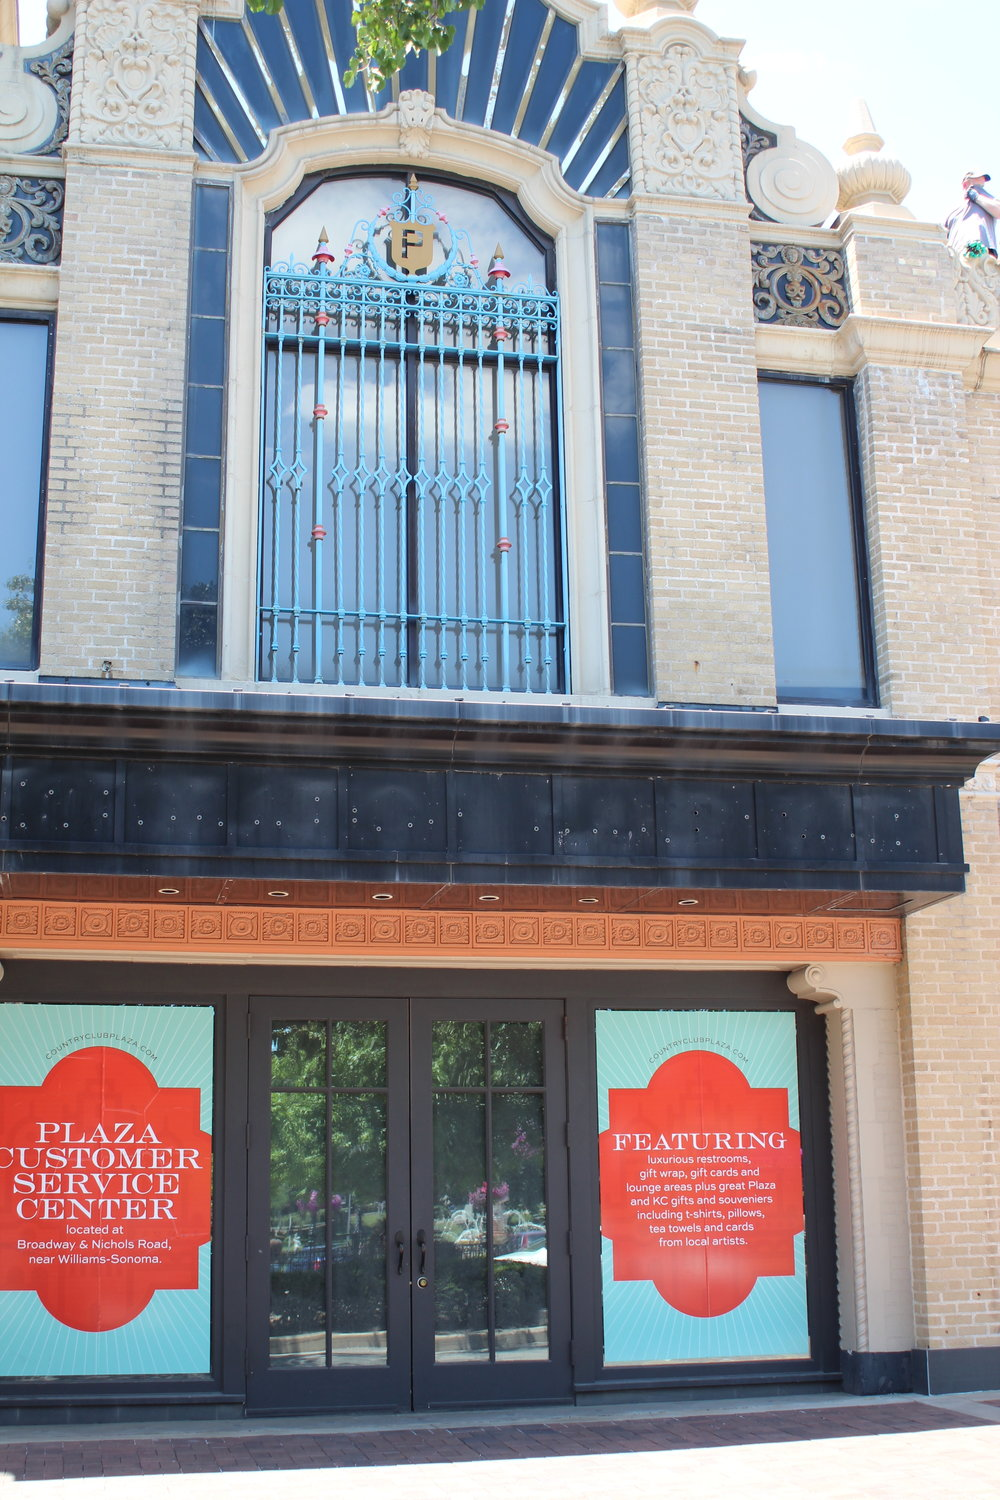 Restoration Emporium's new location at 47th & Wyandotte St. on the Country Club Plaza